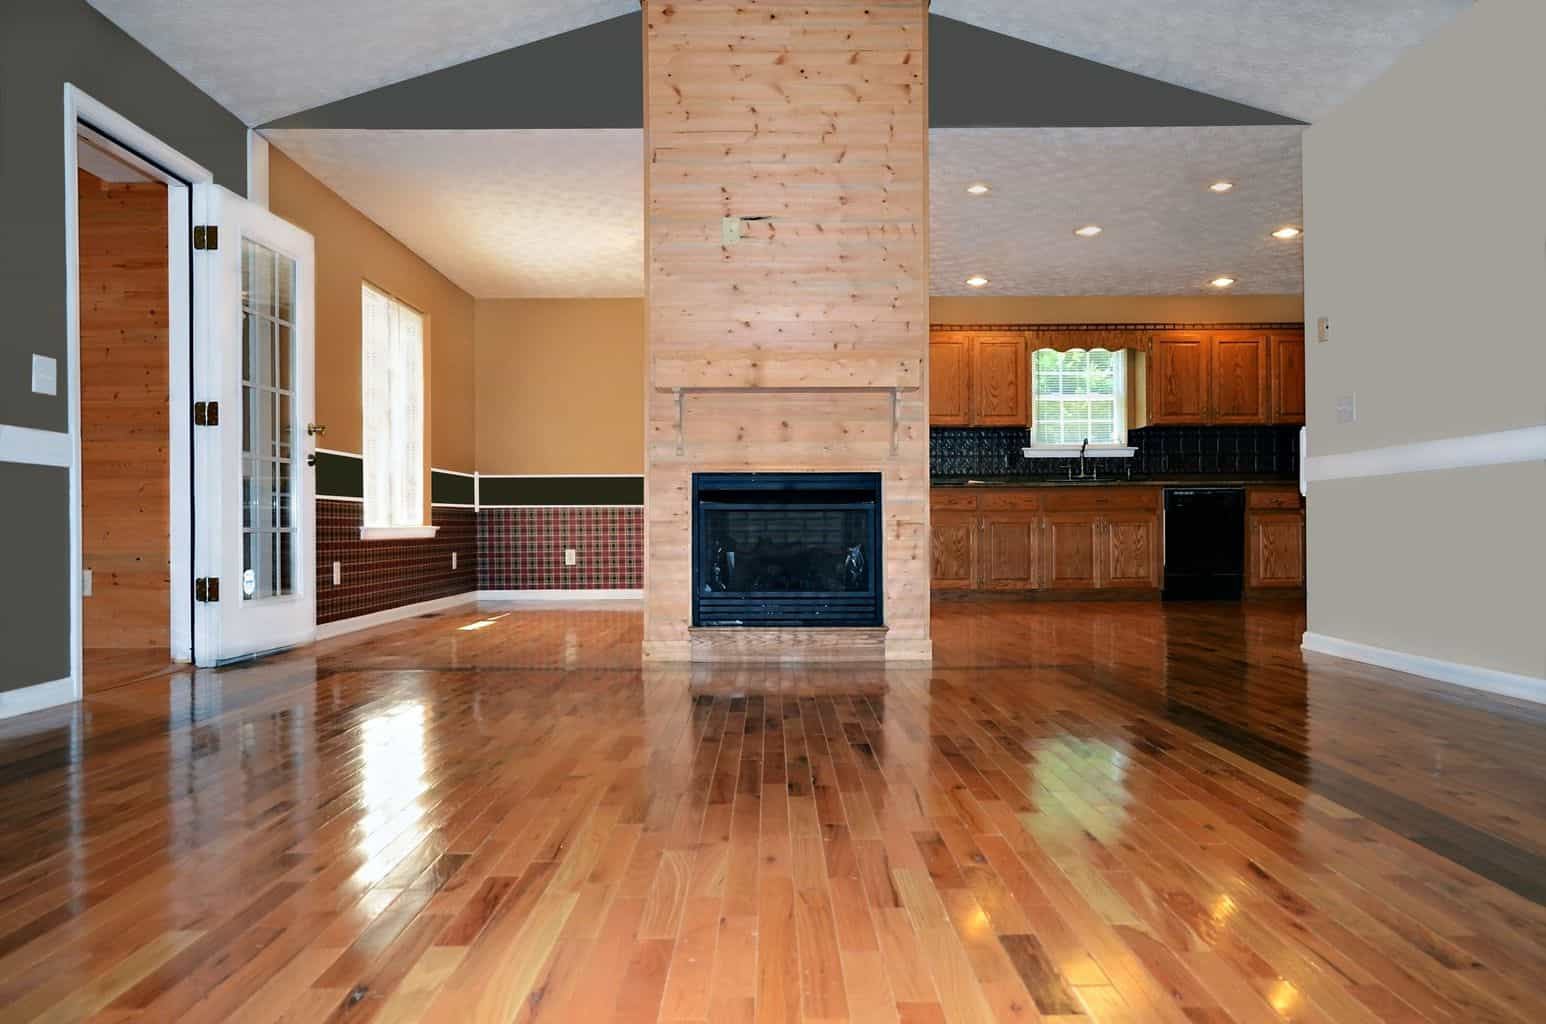 Engineered Hardwood Uses A Thin Strip Of Natural Wood As The Top Layer Instead Printed Image